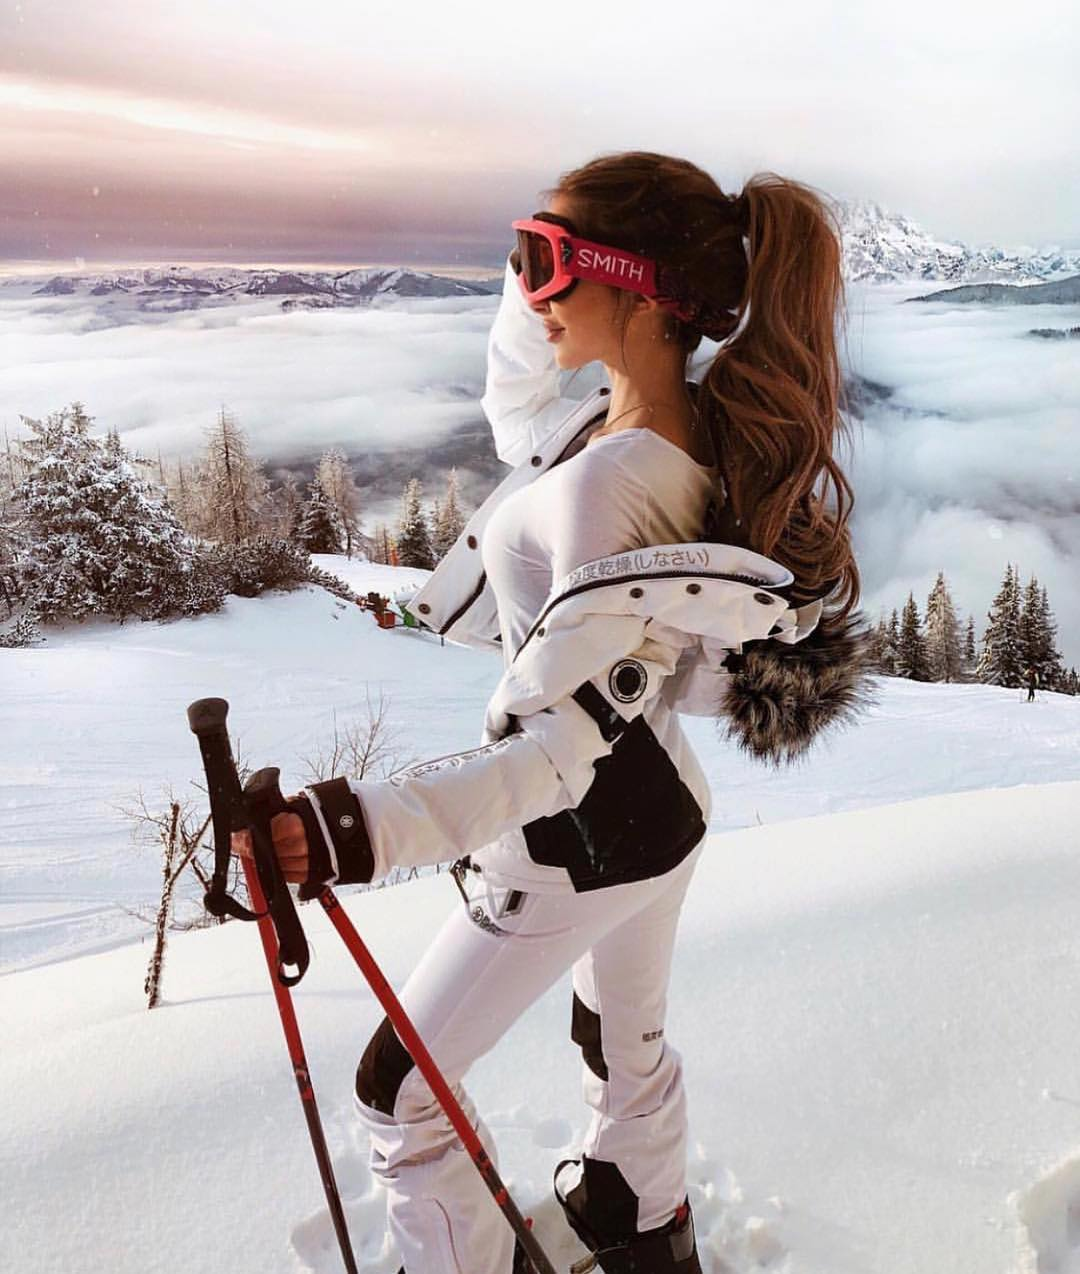 All White Winter Ski Outfit Idea For Young Ladies 2020